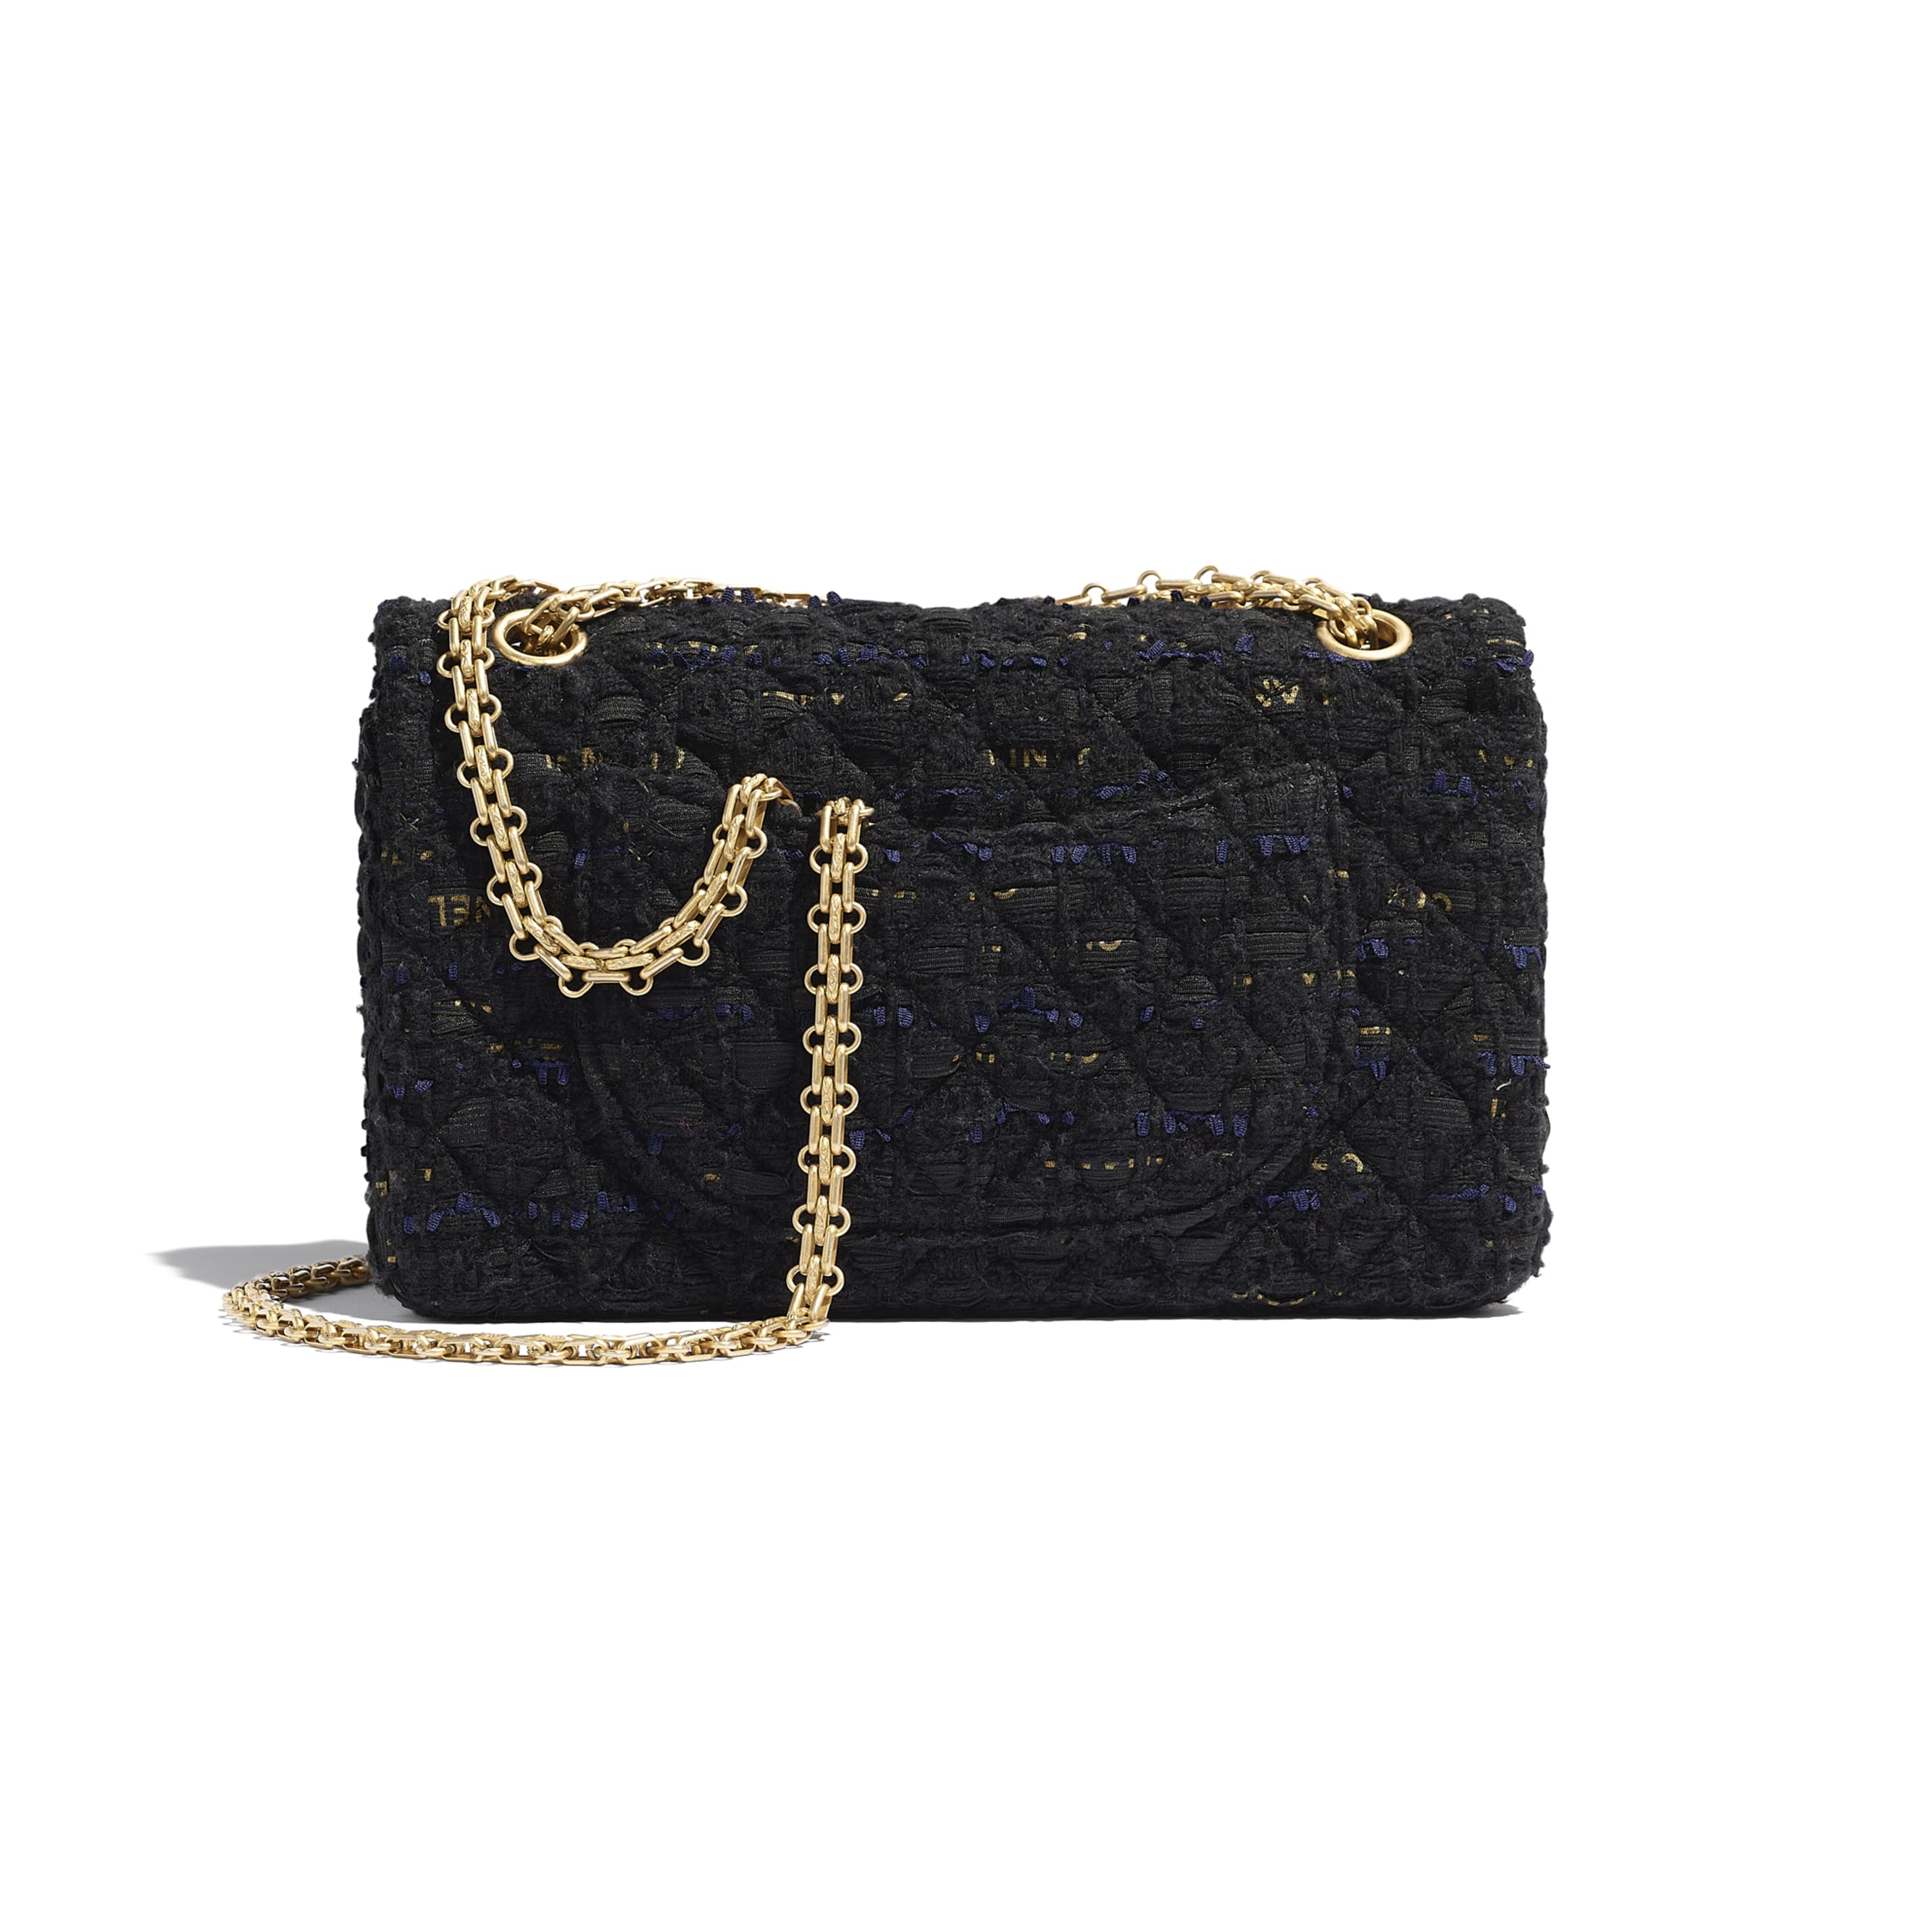 2.55 Handbag - Black, Navy Blue & Gold - Tweed & Gold Metal - CHANEL - Alternative view - see standard sized version